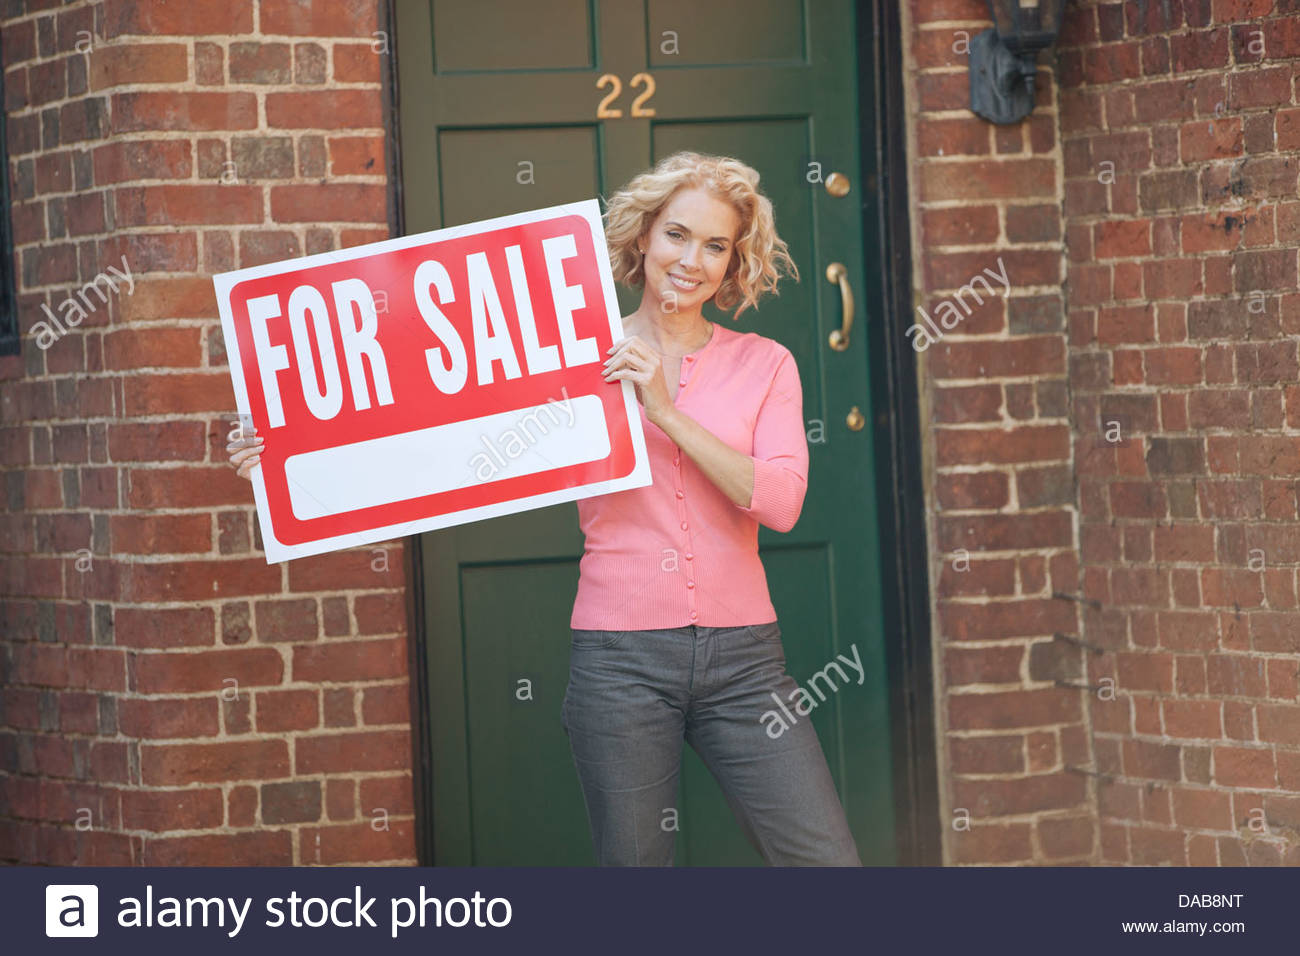 A young woman holding a property for sale sign Photo Stock